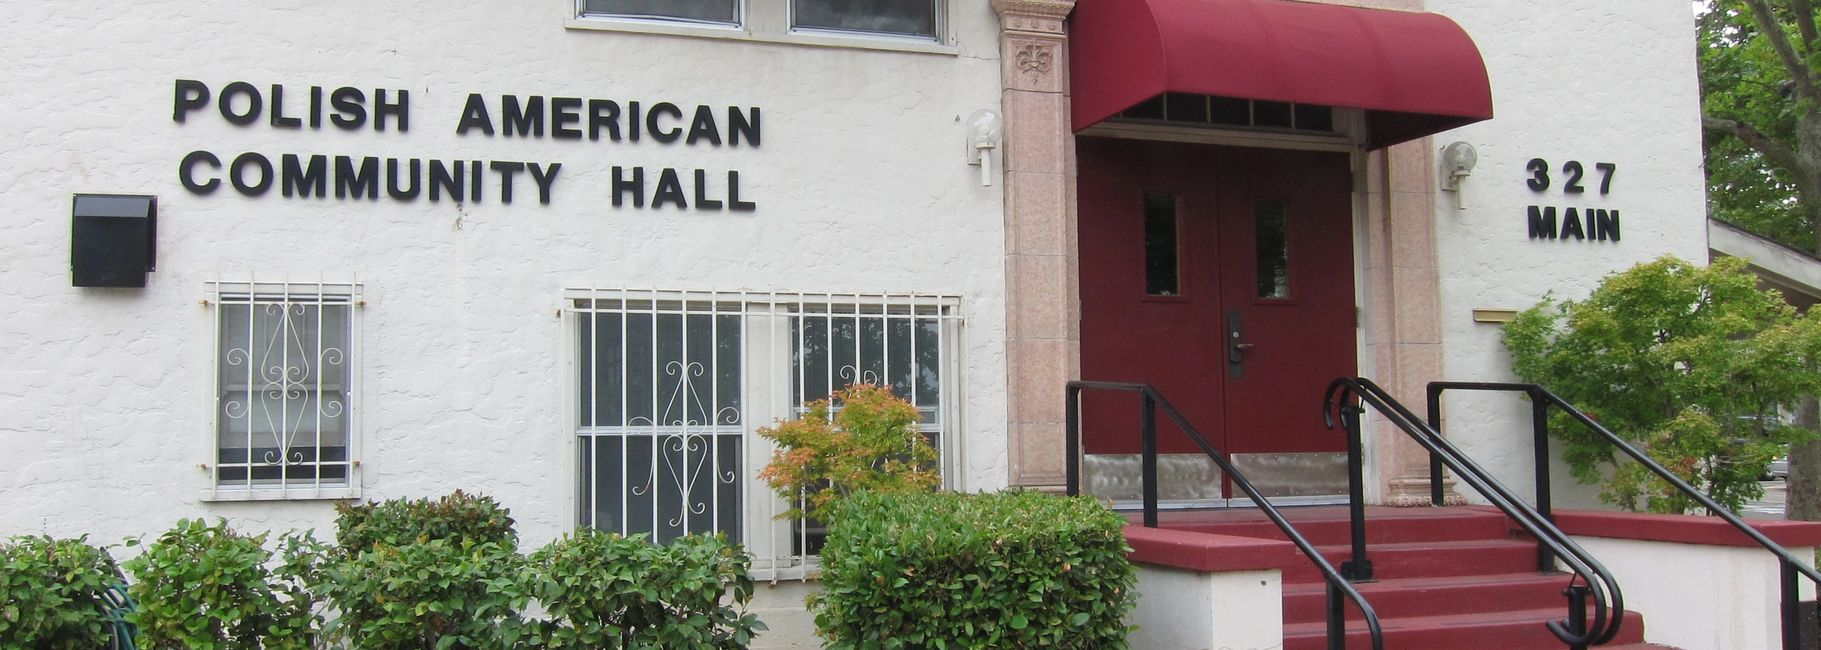 Polish American Community Hall, Hall, 327 Main Street, Polish Heritage